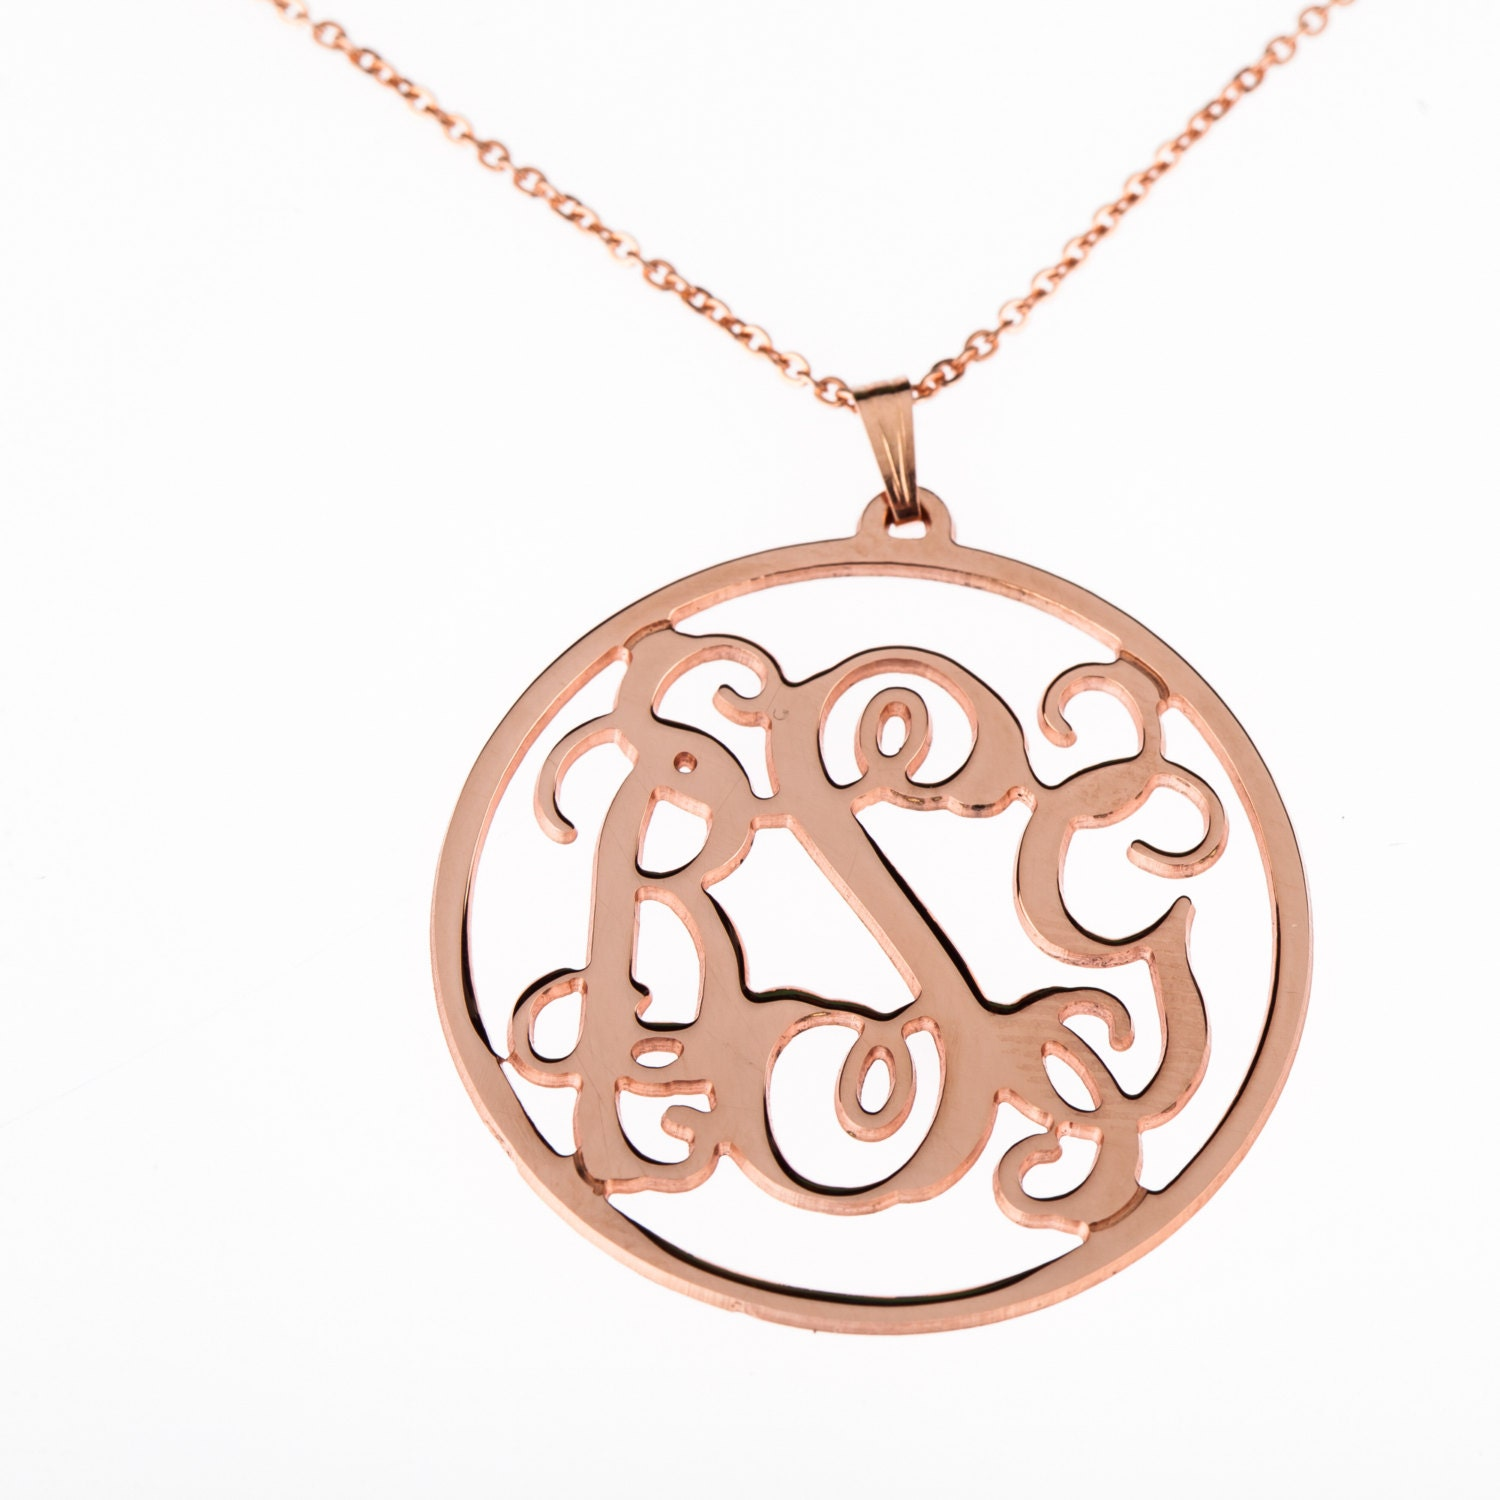 Monogram necklace rose gold round monogram personalized for Rose gold personalized jewelry